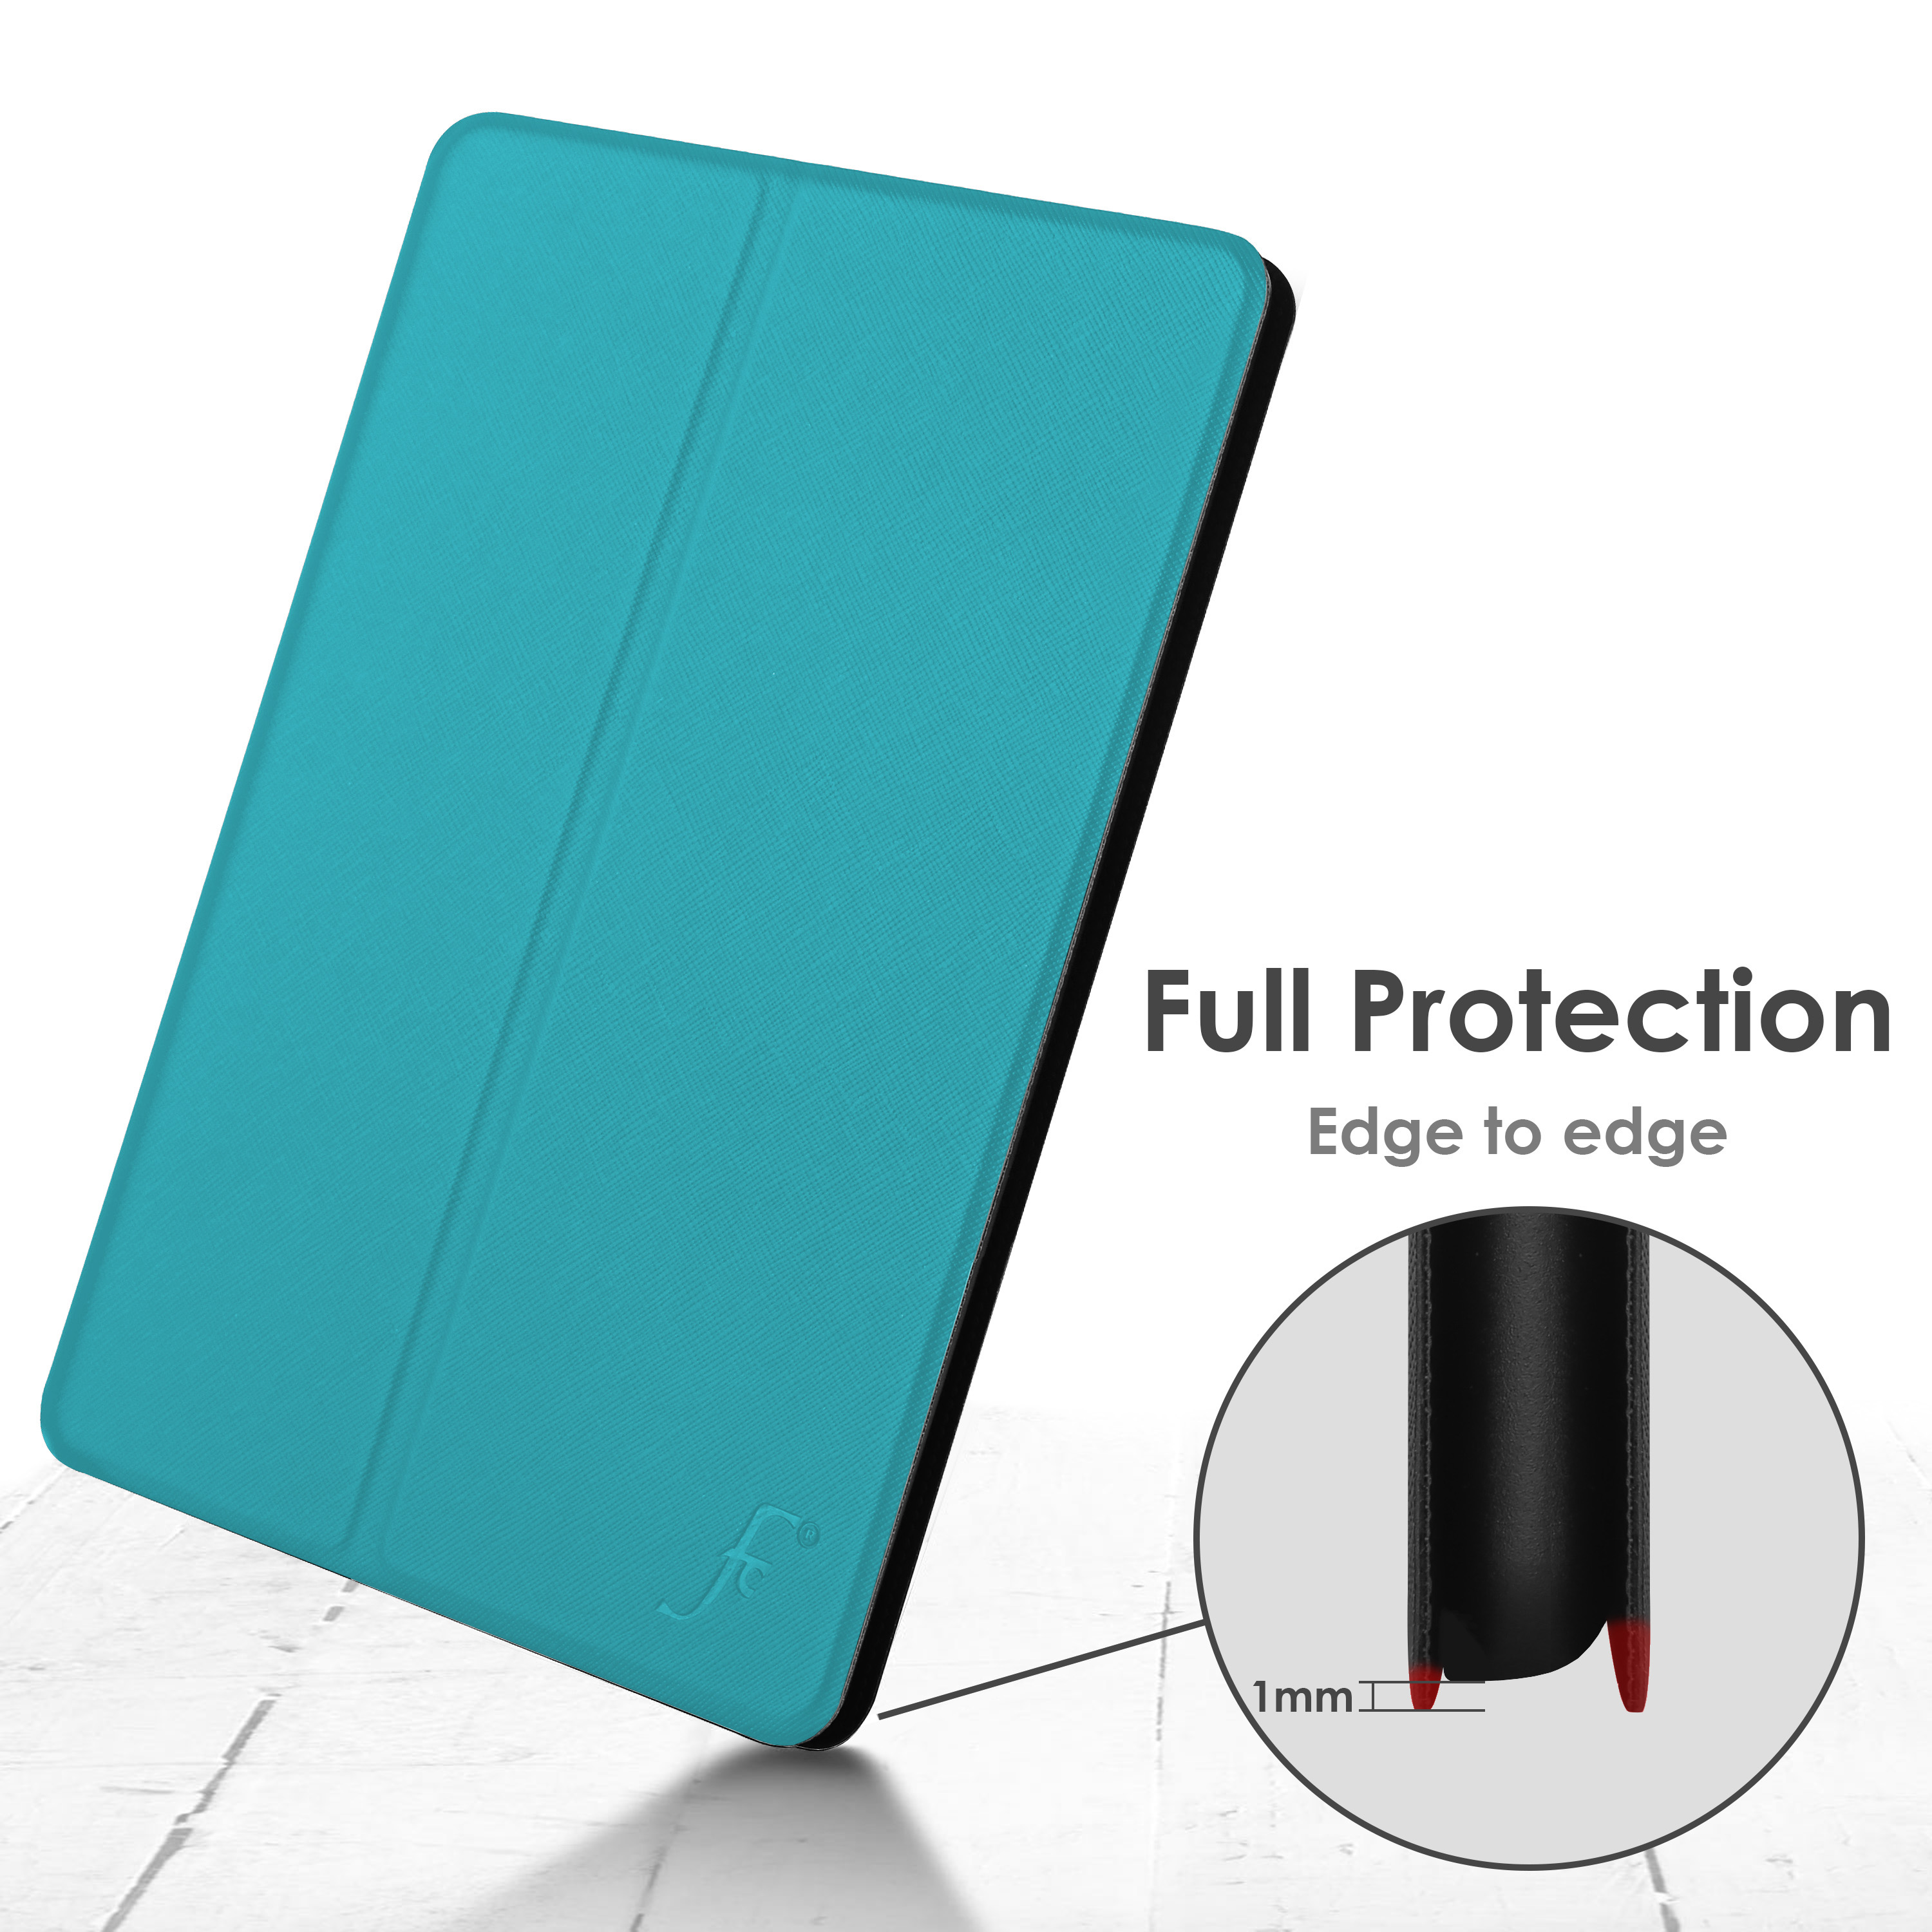 miniature 94 - Samsung Galaxy Tab A 10.1 2019 Étui Magnétique Protection & Support + Stylet